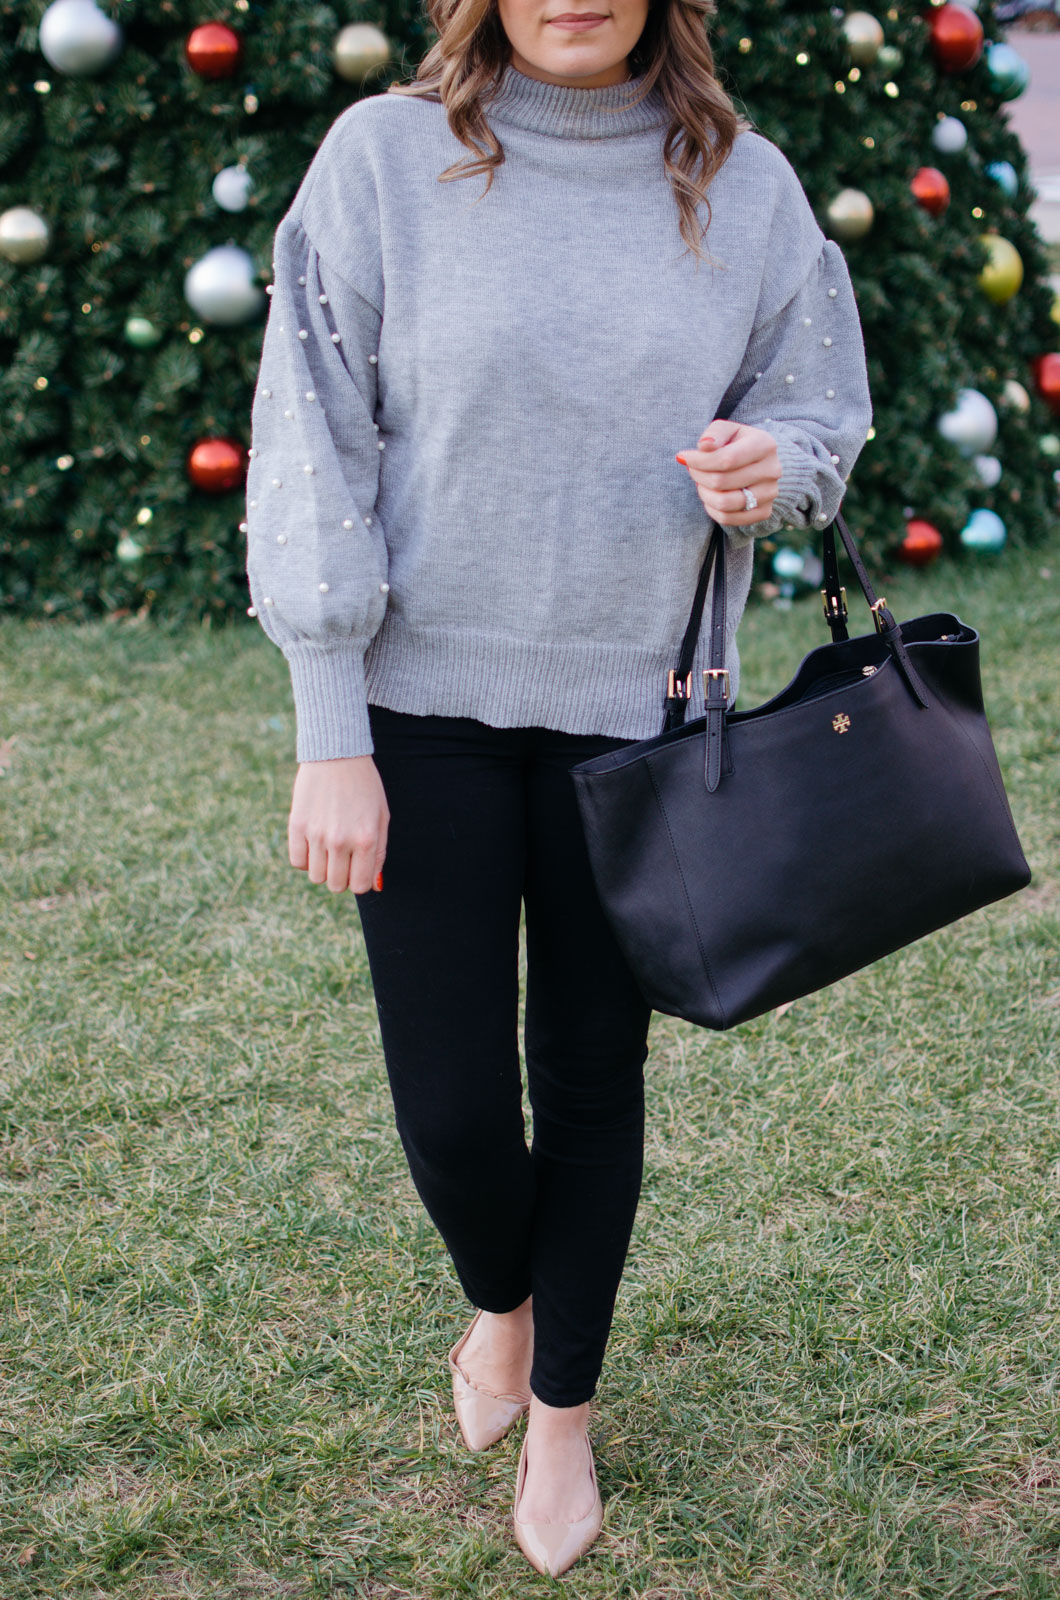 how wear a pearl sweater - glam winter outfit idea | For more winter outfit ideas, head to bylaurenm.com!